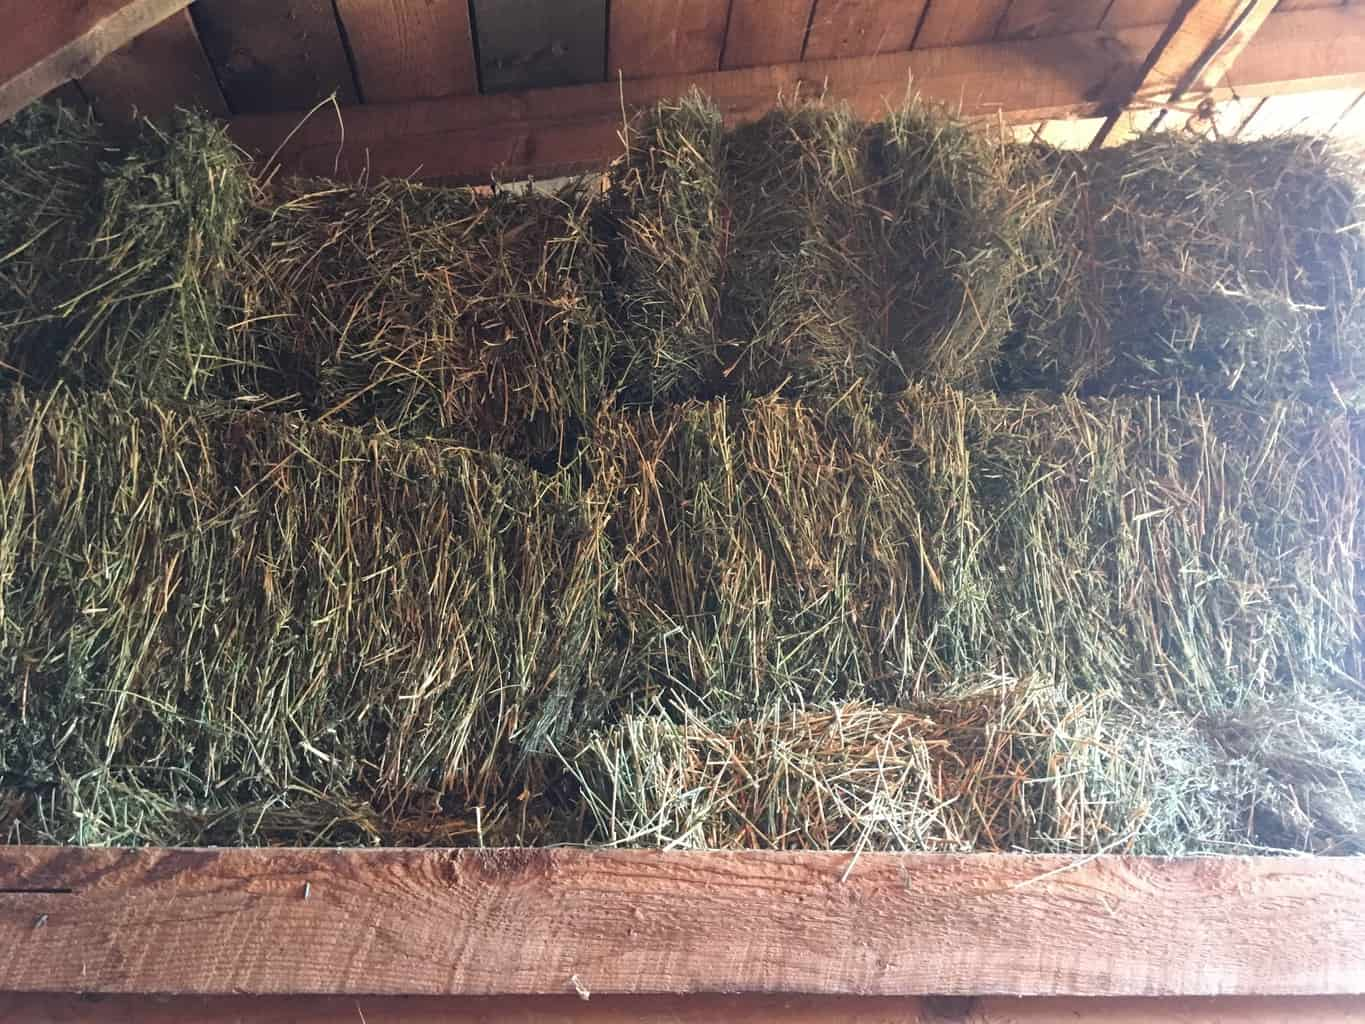 Goats in winter need a lot of hay to help keep them warm!